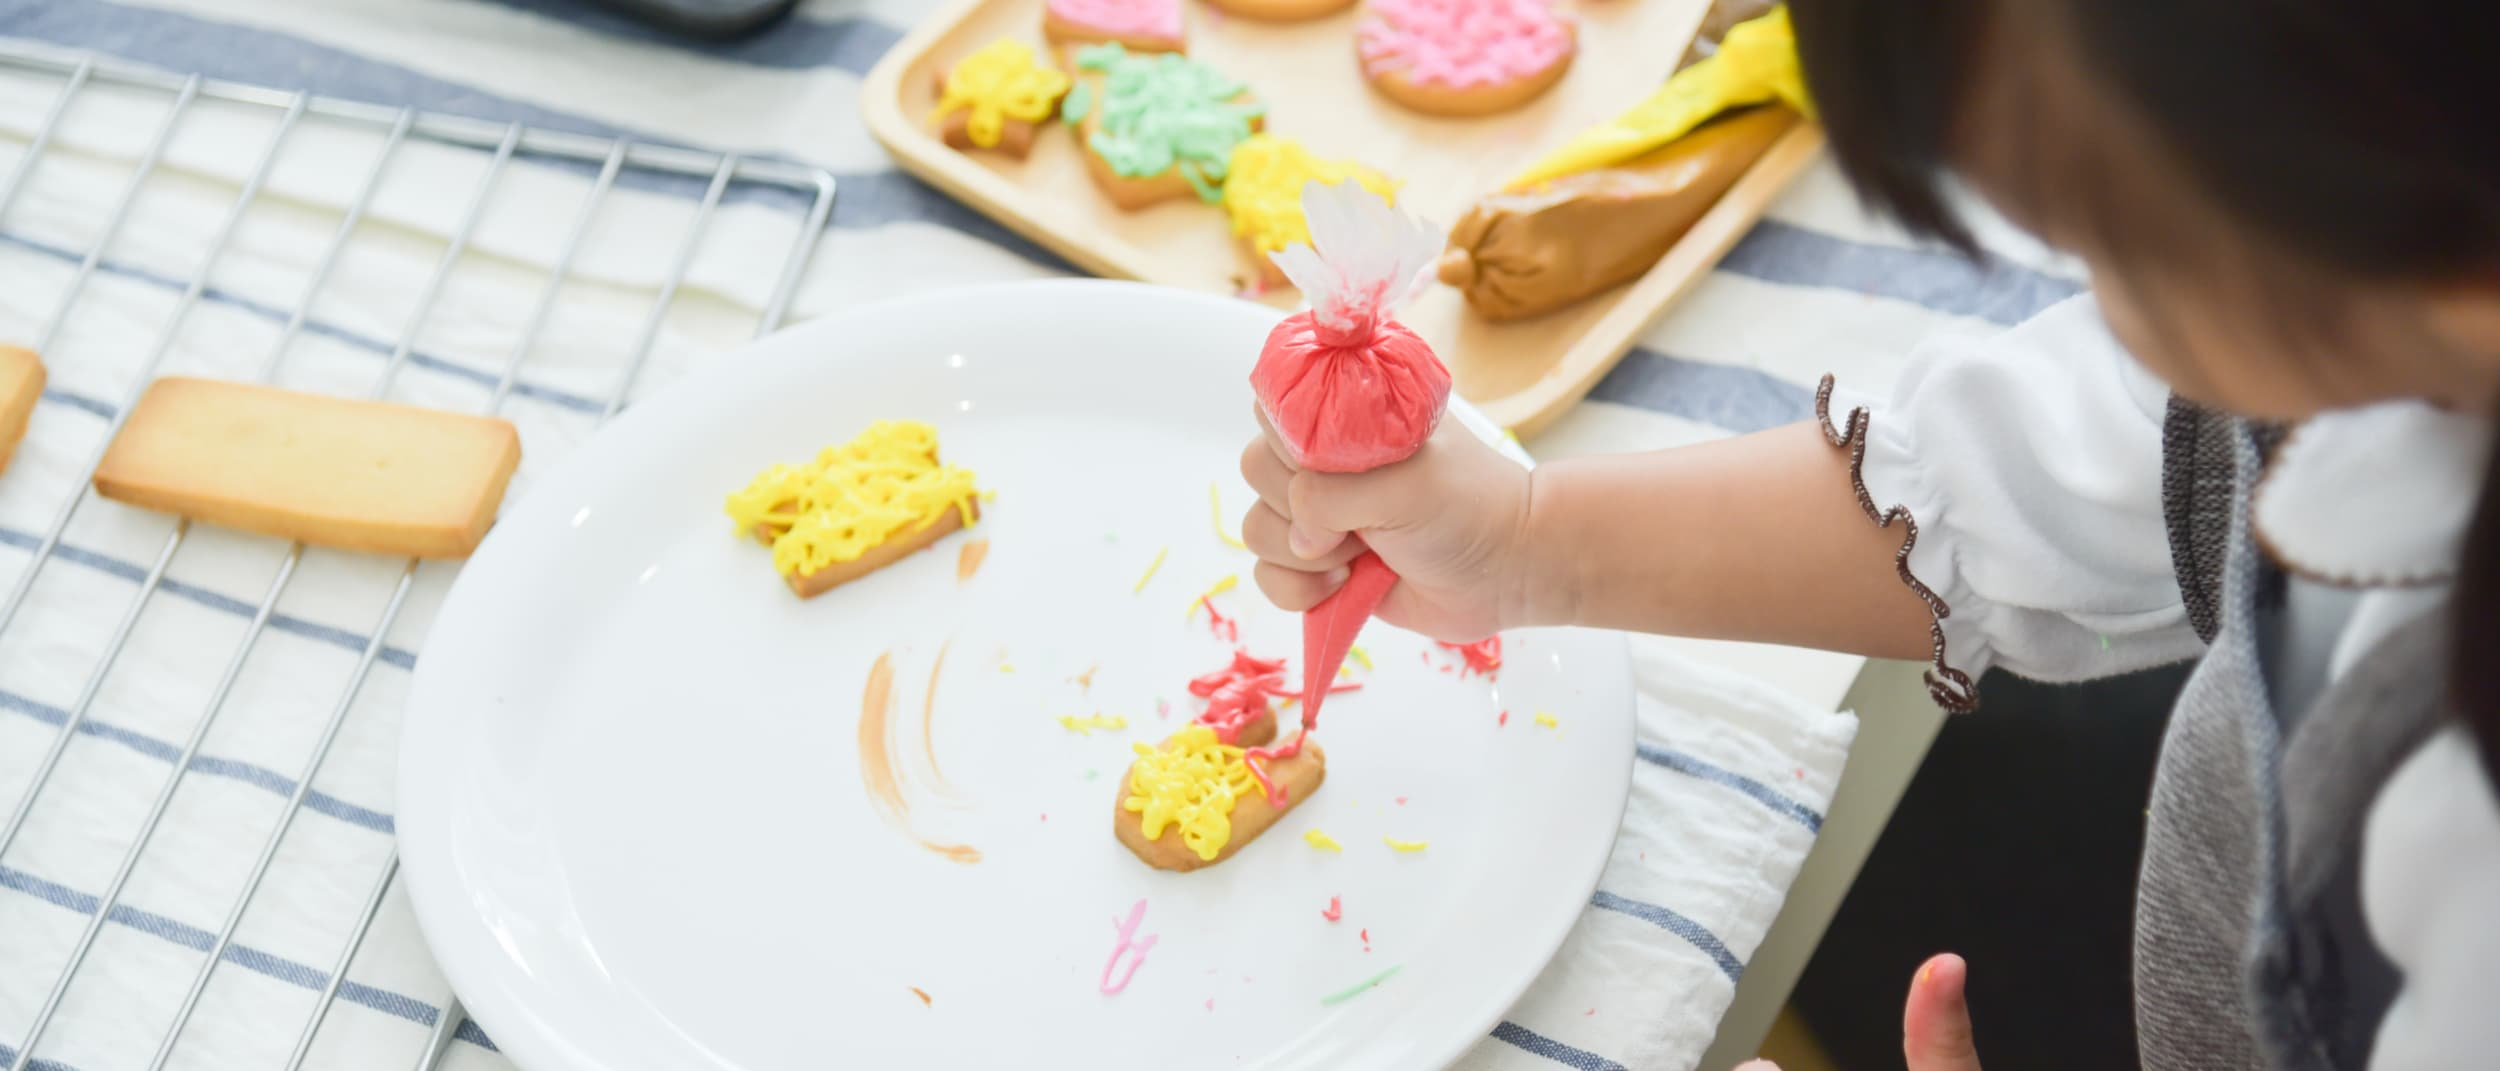 Taste.Shop.Play Smiley Face Cookie Decorating